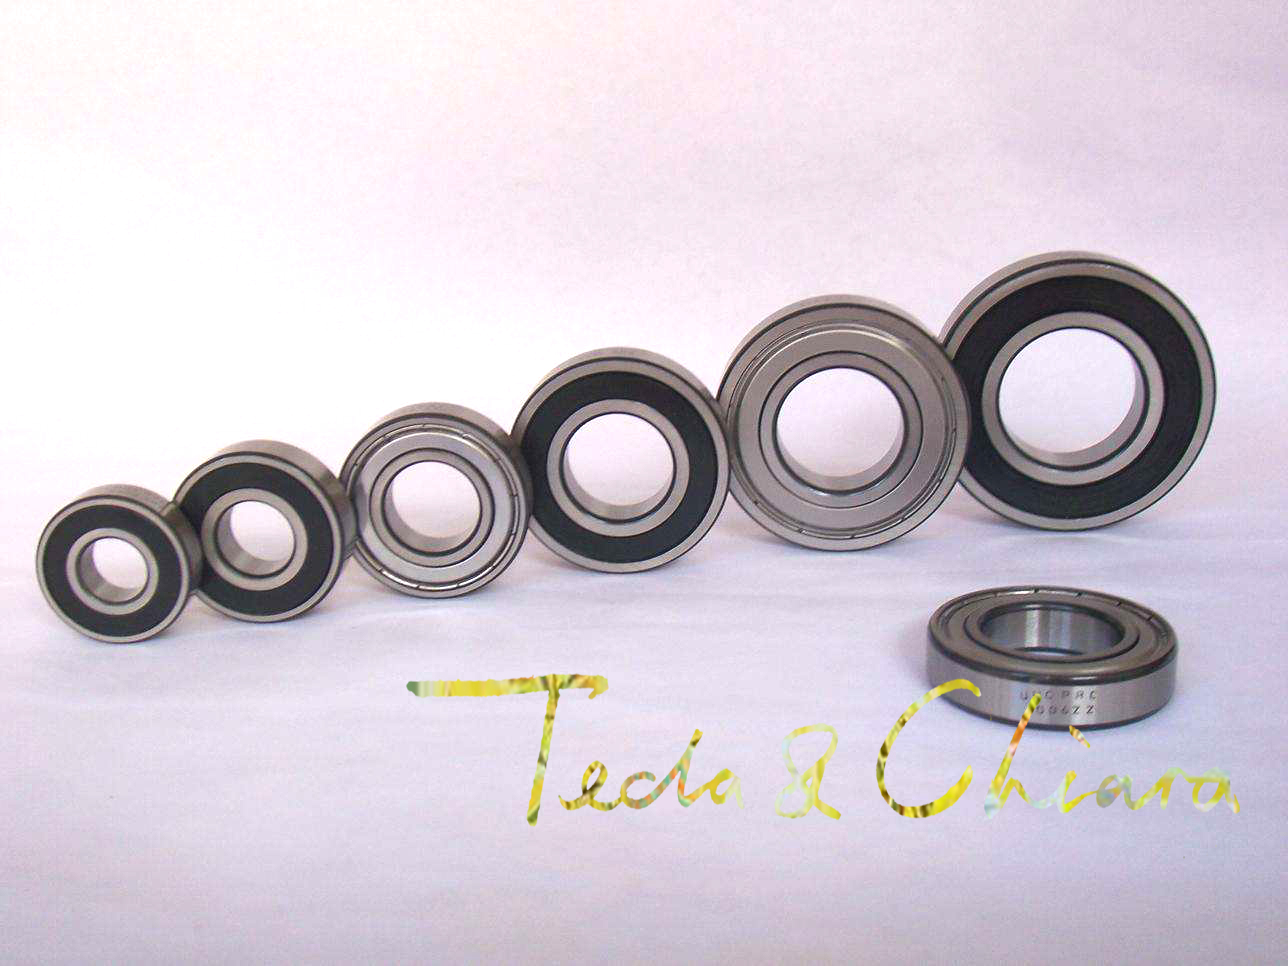 6902 6902ZZ 6902RS 6902-2Z 6902Z 6902-2RS ZZ RS RZ 2RZ Deep Groove Ball Bearings 15 x 28 x 7mm High Quality free shipping 25x47x12mm deep groove ball bearings 6005 zz 2z 6005zz bearing 6005zz 6005 2rs